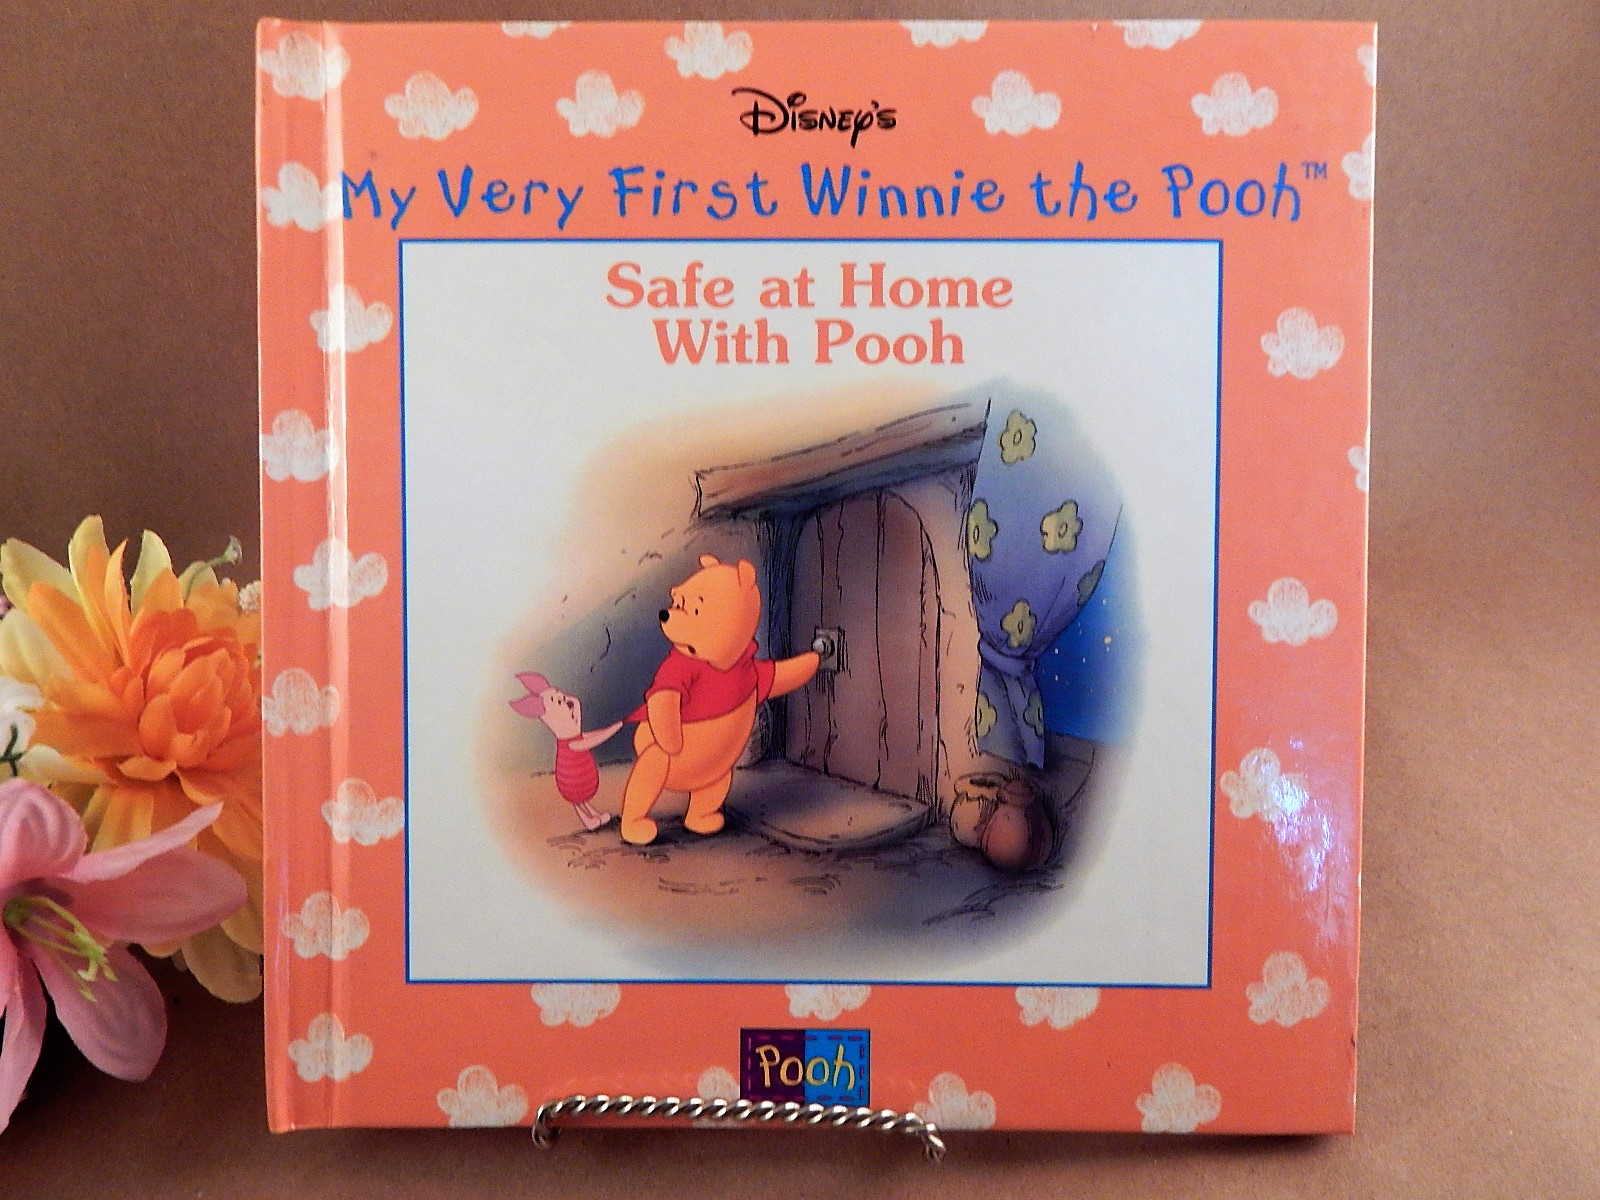 Book Safe at Home With Pooh Disneys My Very First Winnie the Pooh Vintage 198 Illustrated Animal Picture Story Hardback Gift Book for Children Eeyore